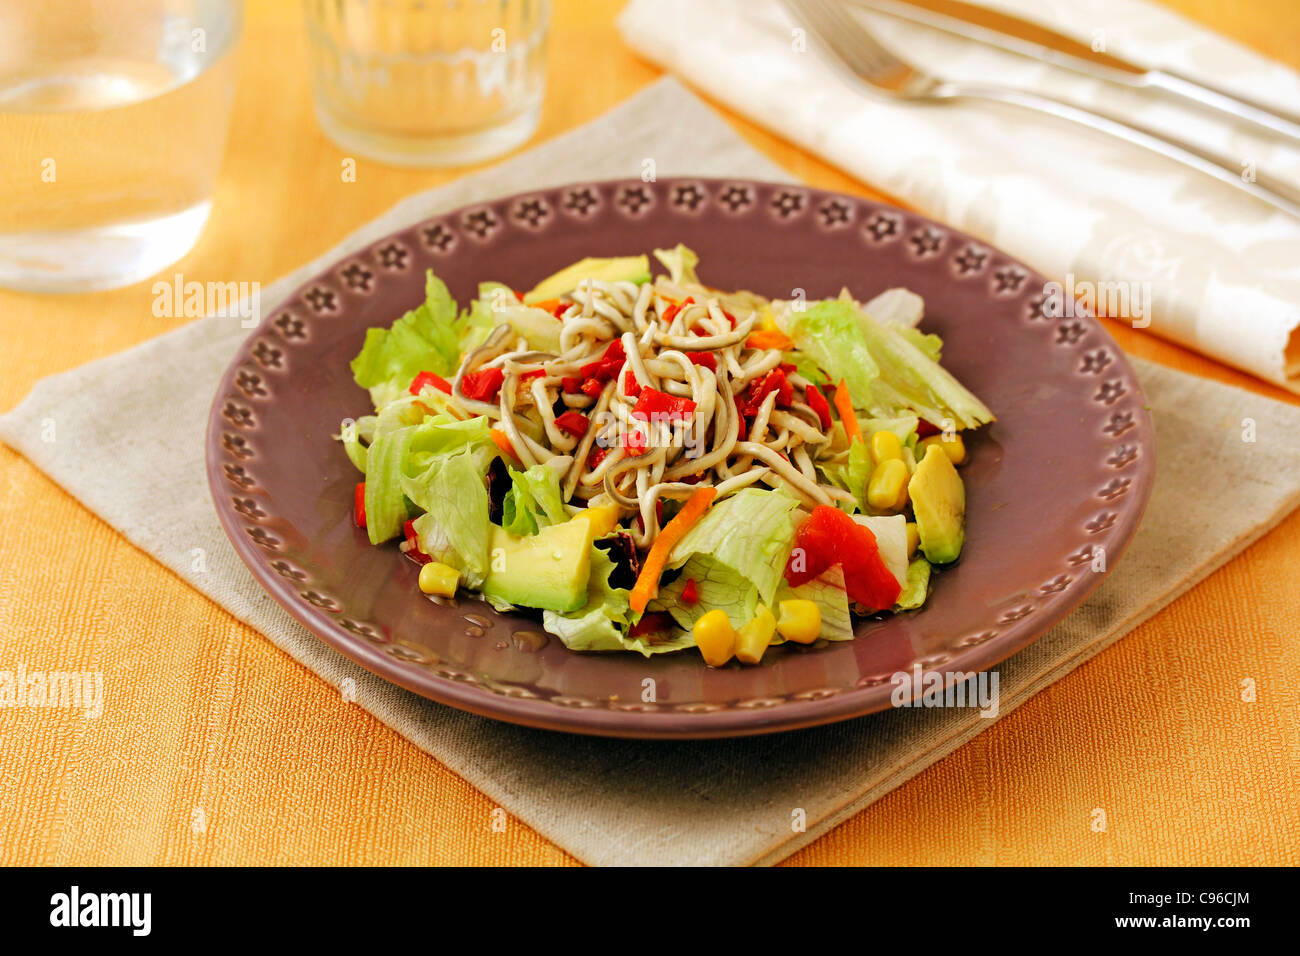 Salad with elvers substitute. Recipe available. - Stock Image